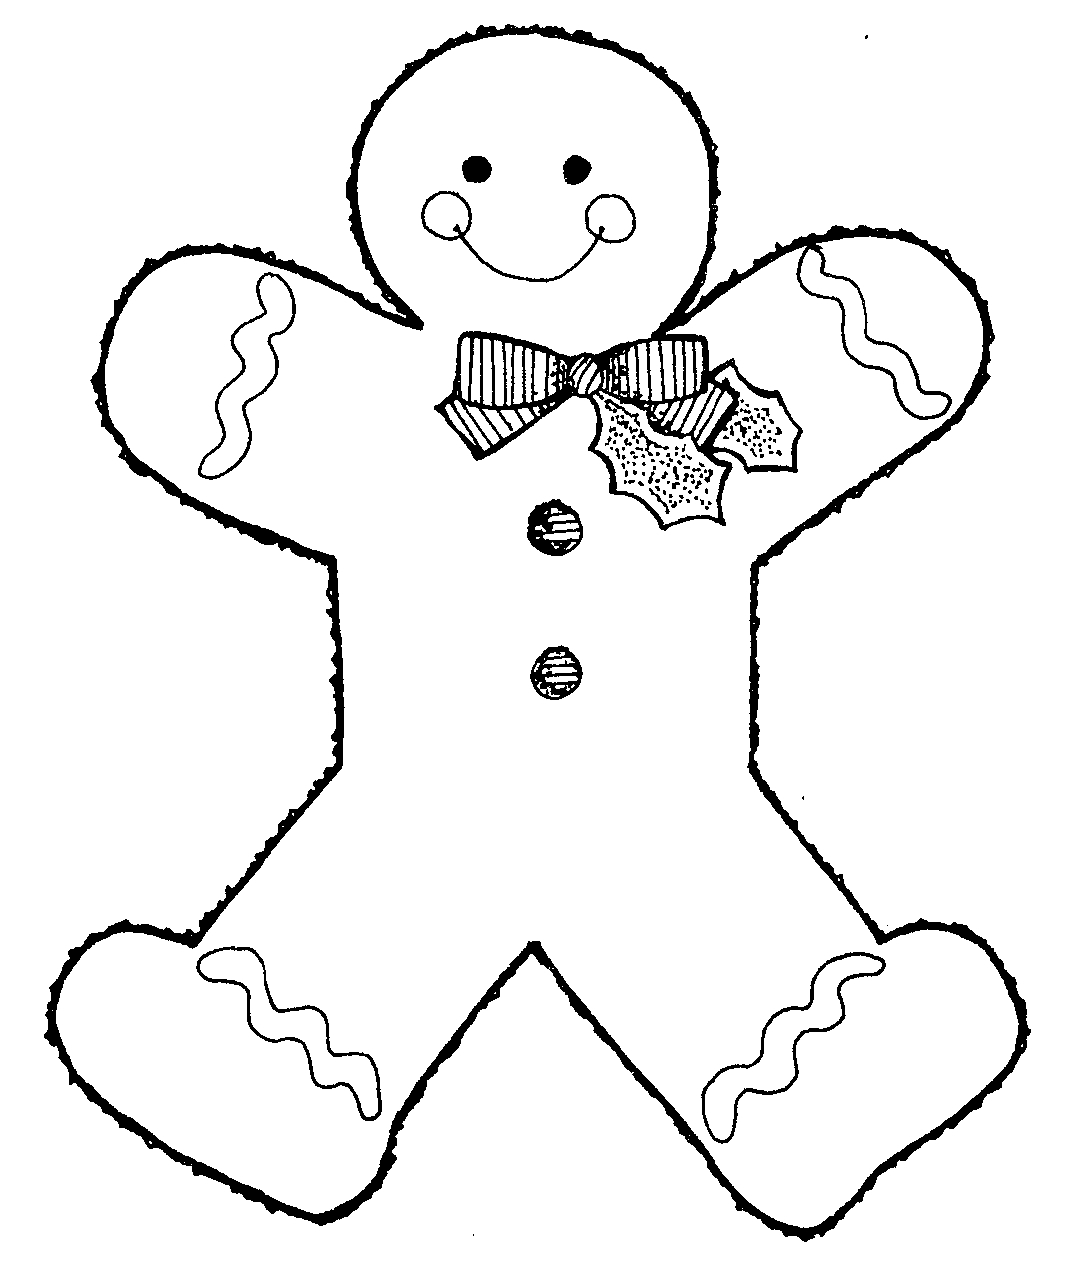 Free black and white gingerbread man clipart svg download Gingerbread man black and white clipart kid 2 - Cliparting.com svg download